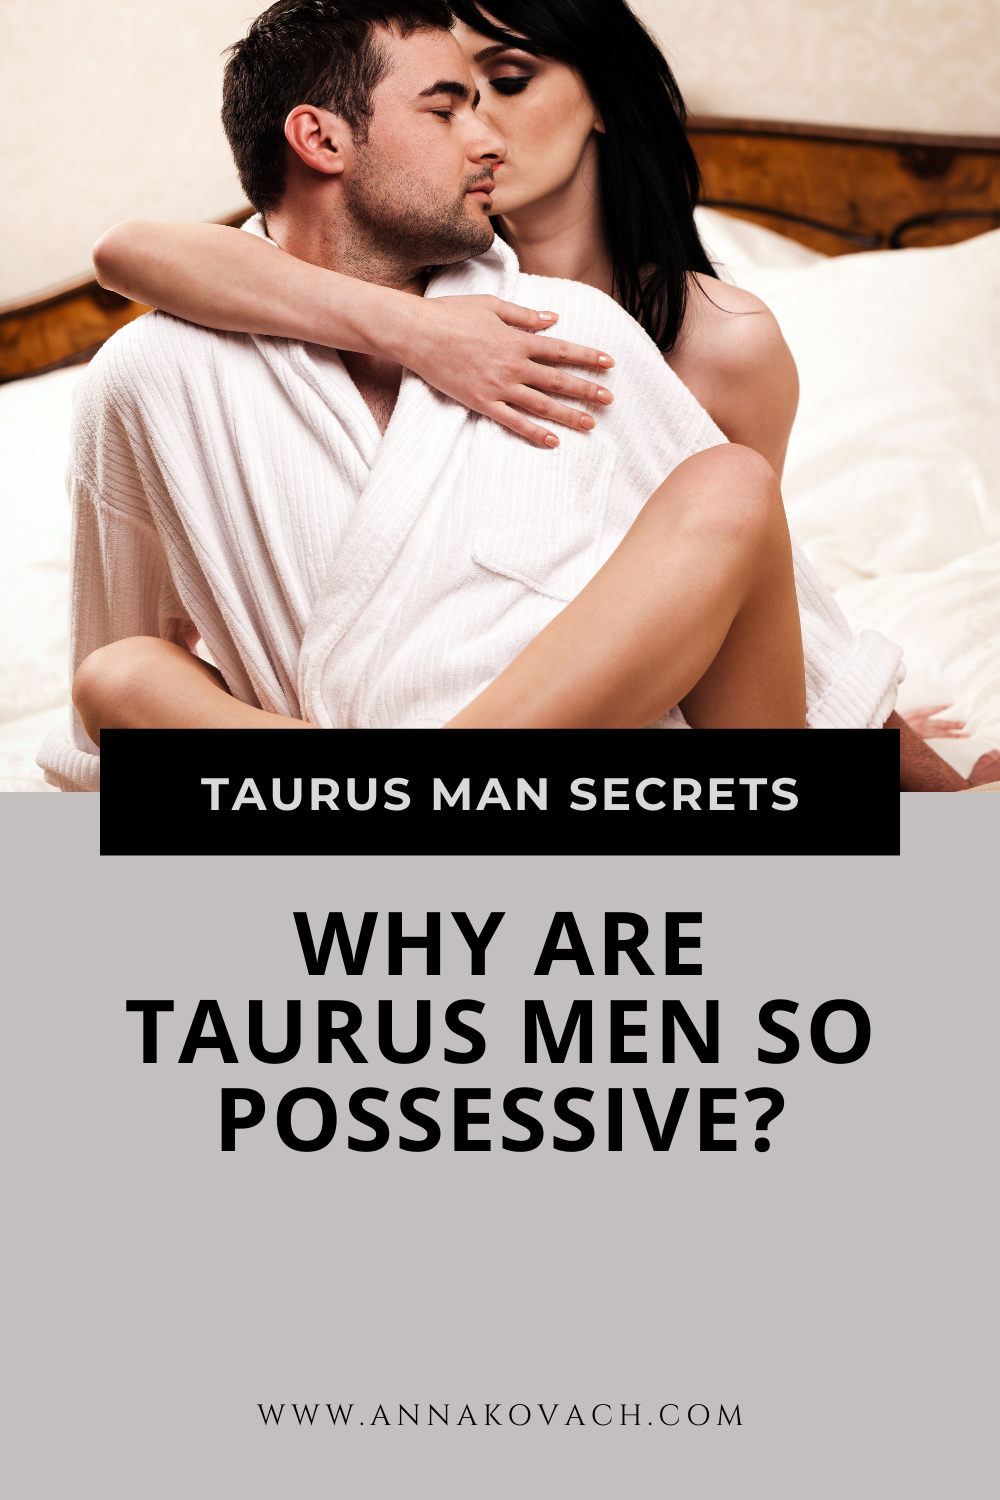 Why Are Taurus Men So Possessive With Their Partner